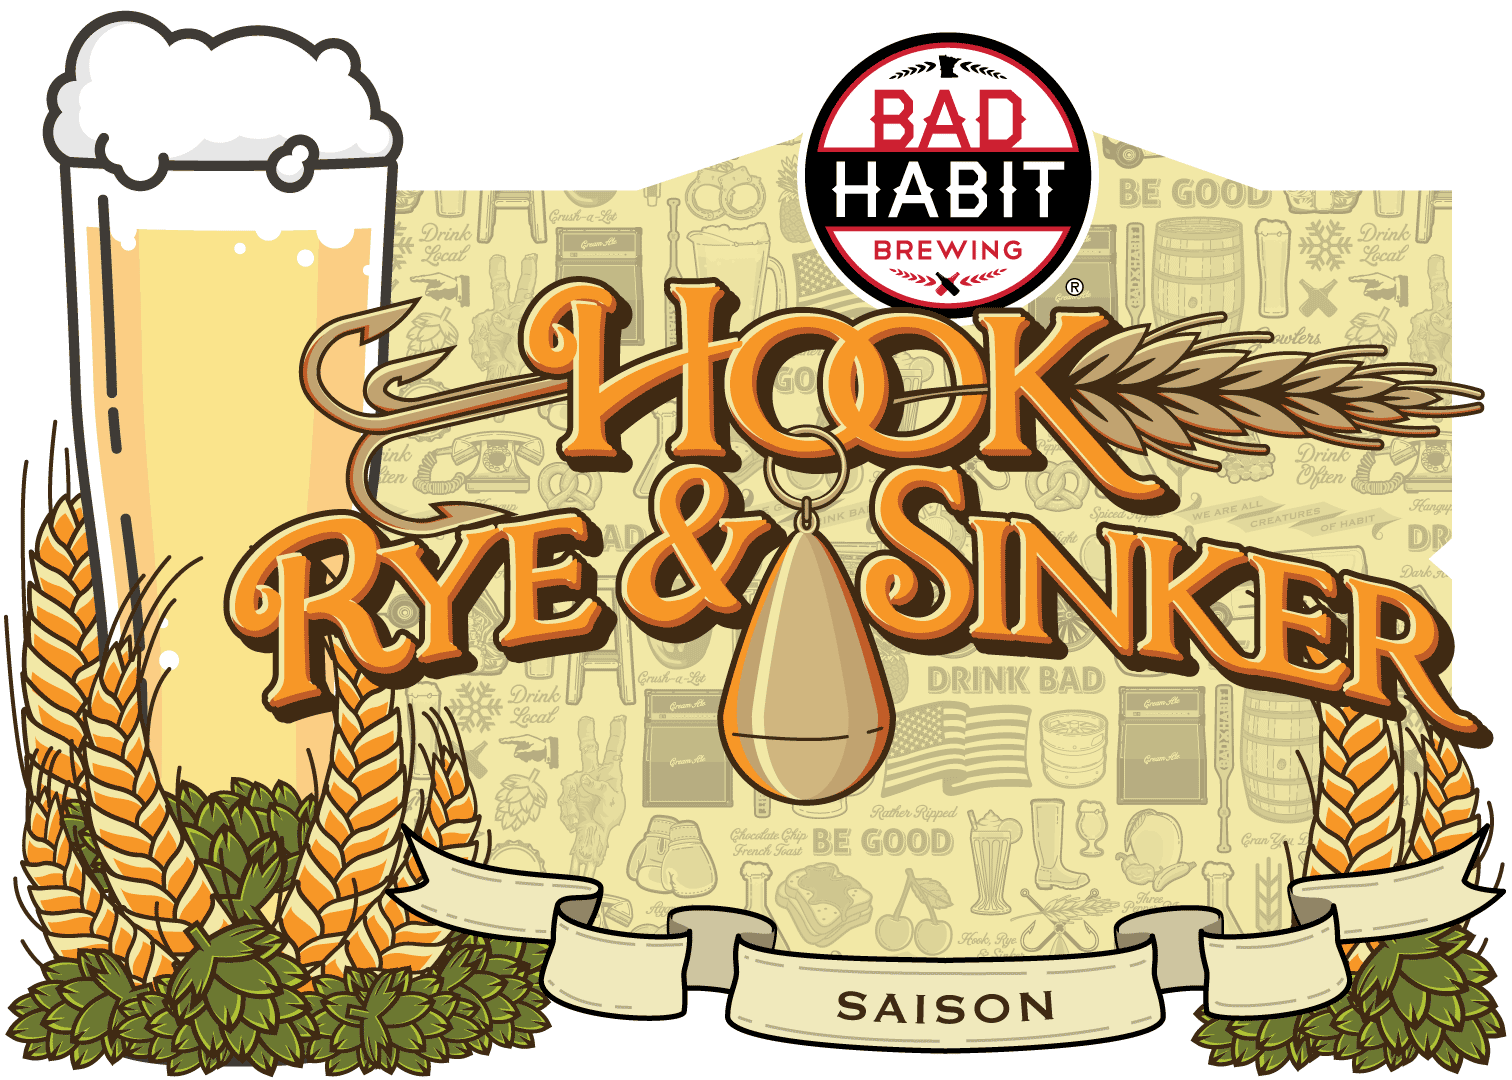 HOOKRYE & SINKER - Saison | 5% ABVWe brew this delicious ale for fishing opener. This year we missed it by one week. Just like fishing, sometimes you're on and sometimes you have to shoot for next week.